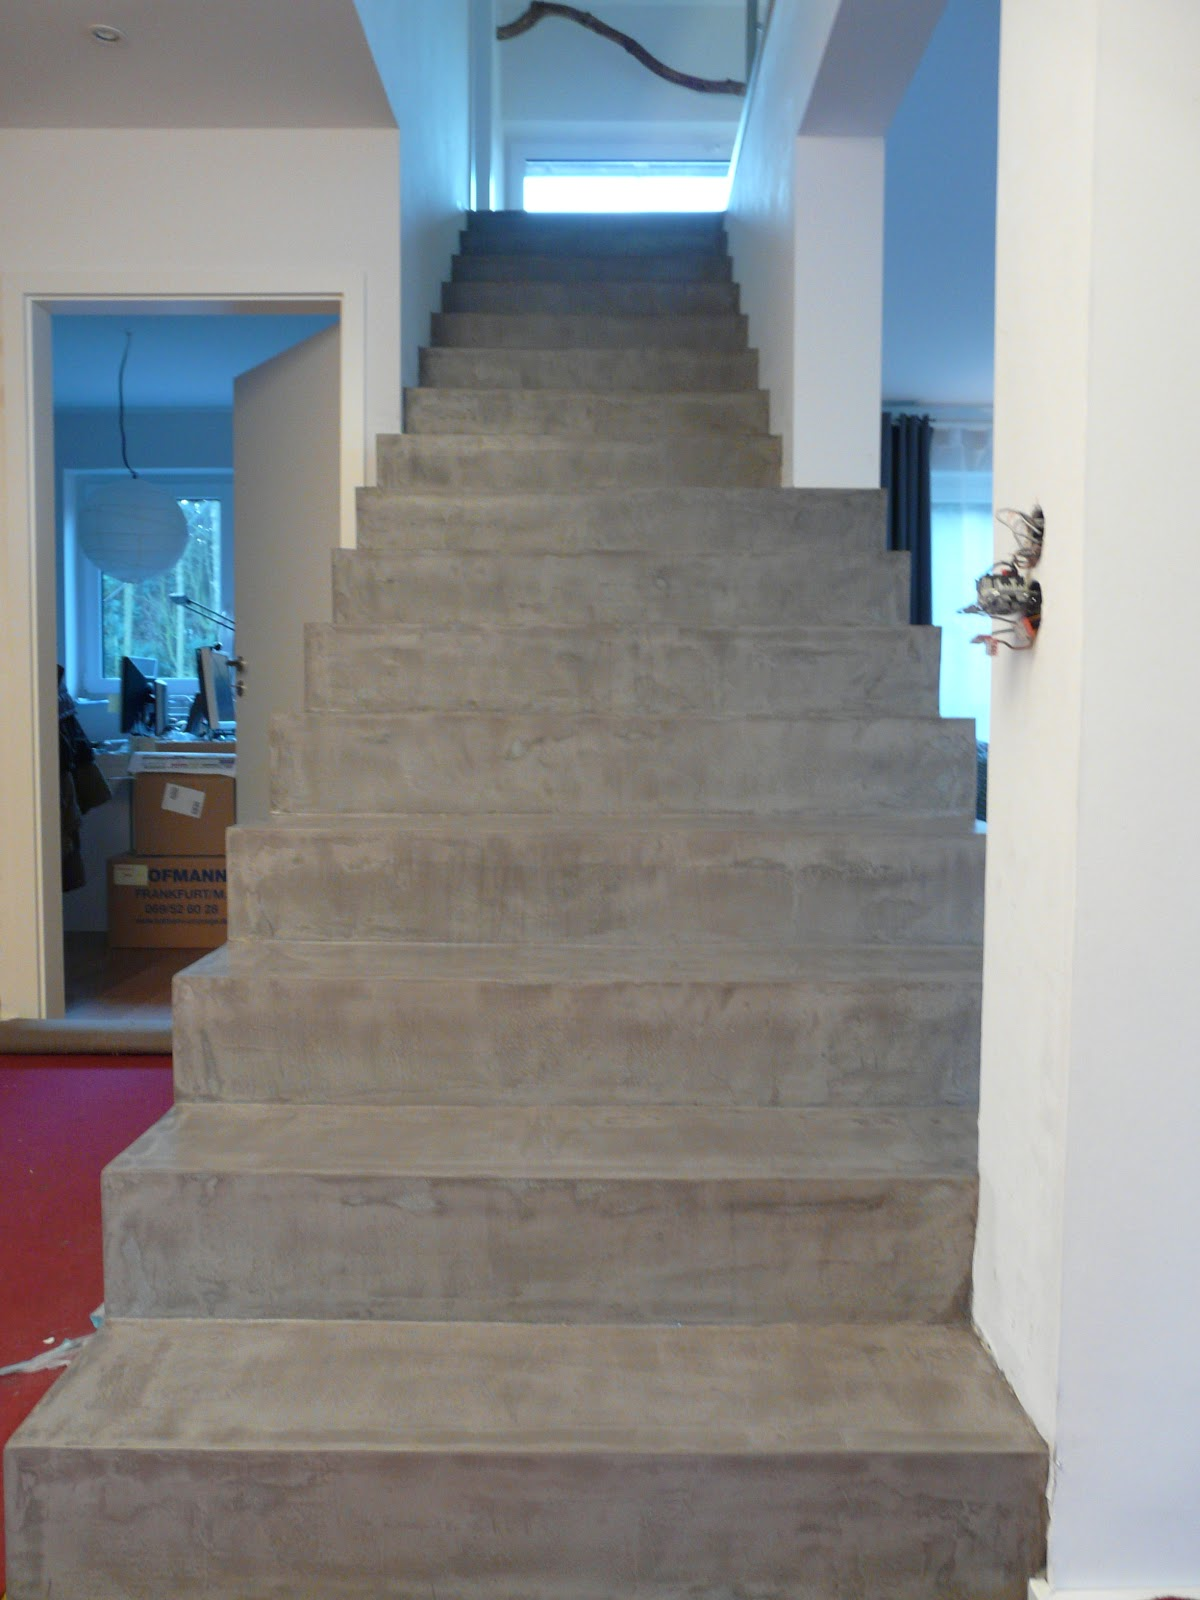 wand wohndesign beton cire beton floor treppe in betonoptik. Black Bedroom Furniture Sets. Home Design Ideas